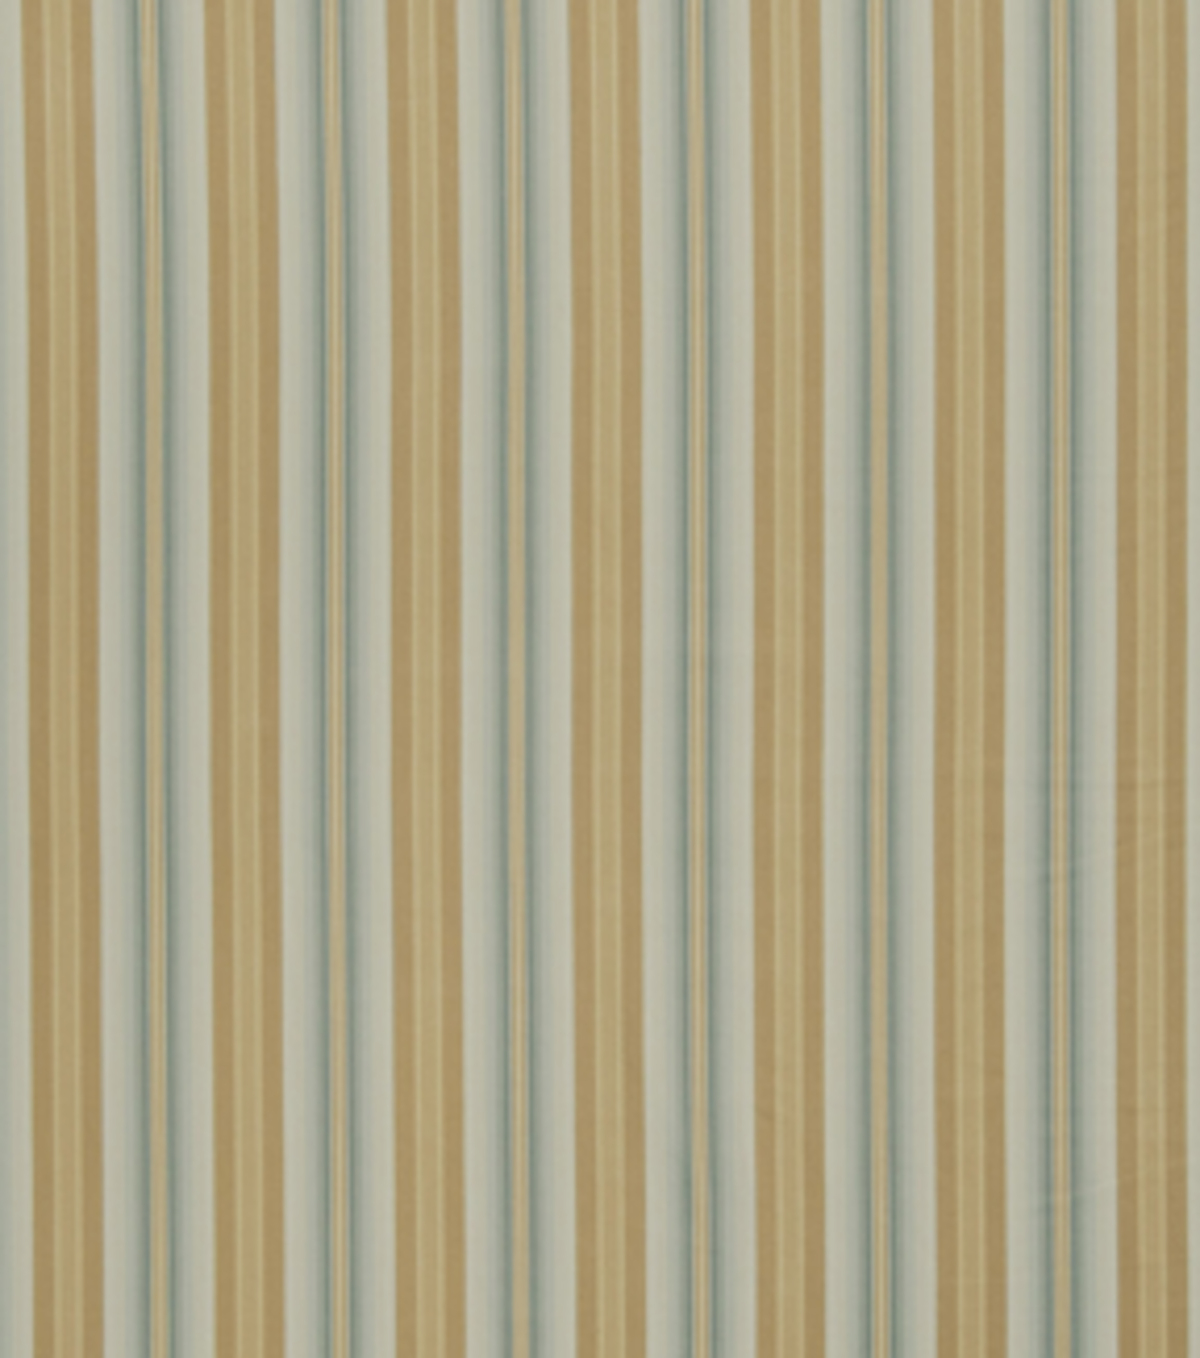 Home Decor 8\u0022x8\u0022 Fabric Swatch-French General Gidget La Mer